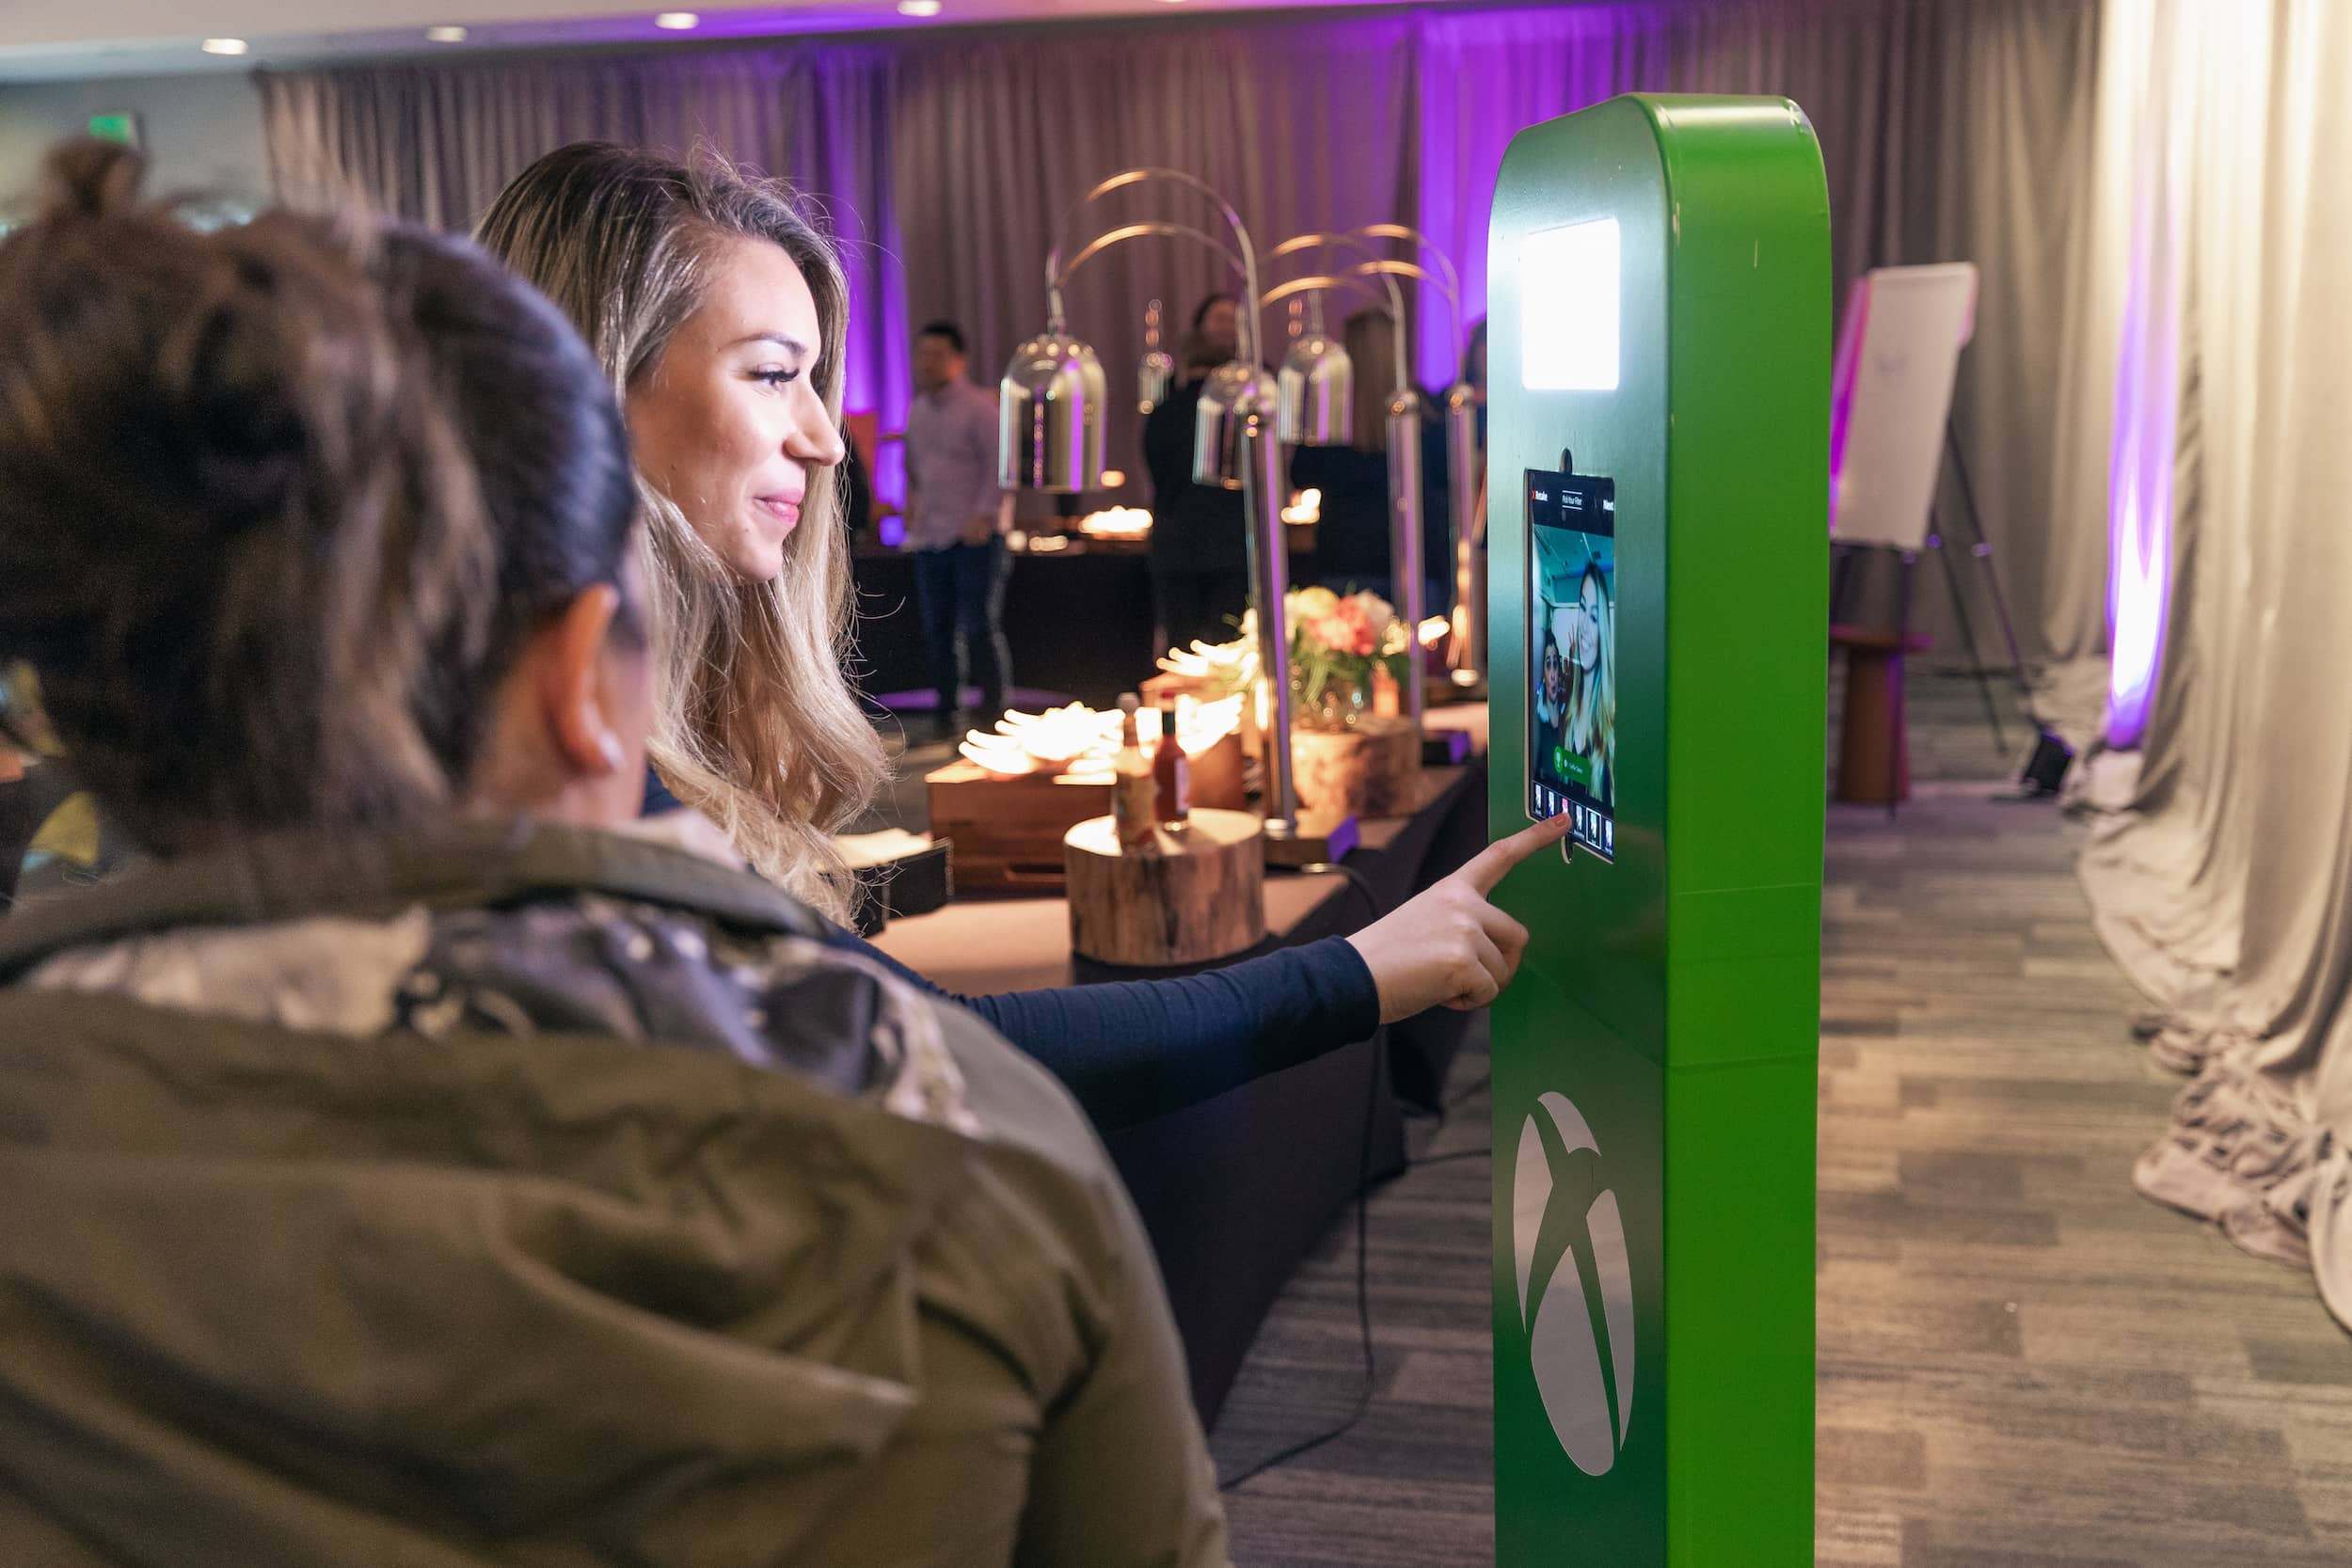 XBox Selfie Stand Full Wrap photo booth experience